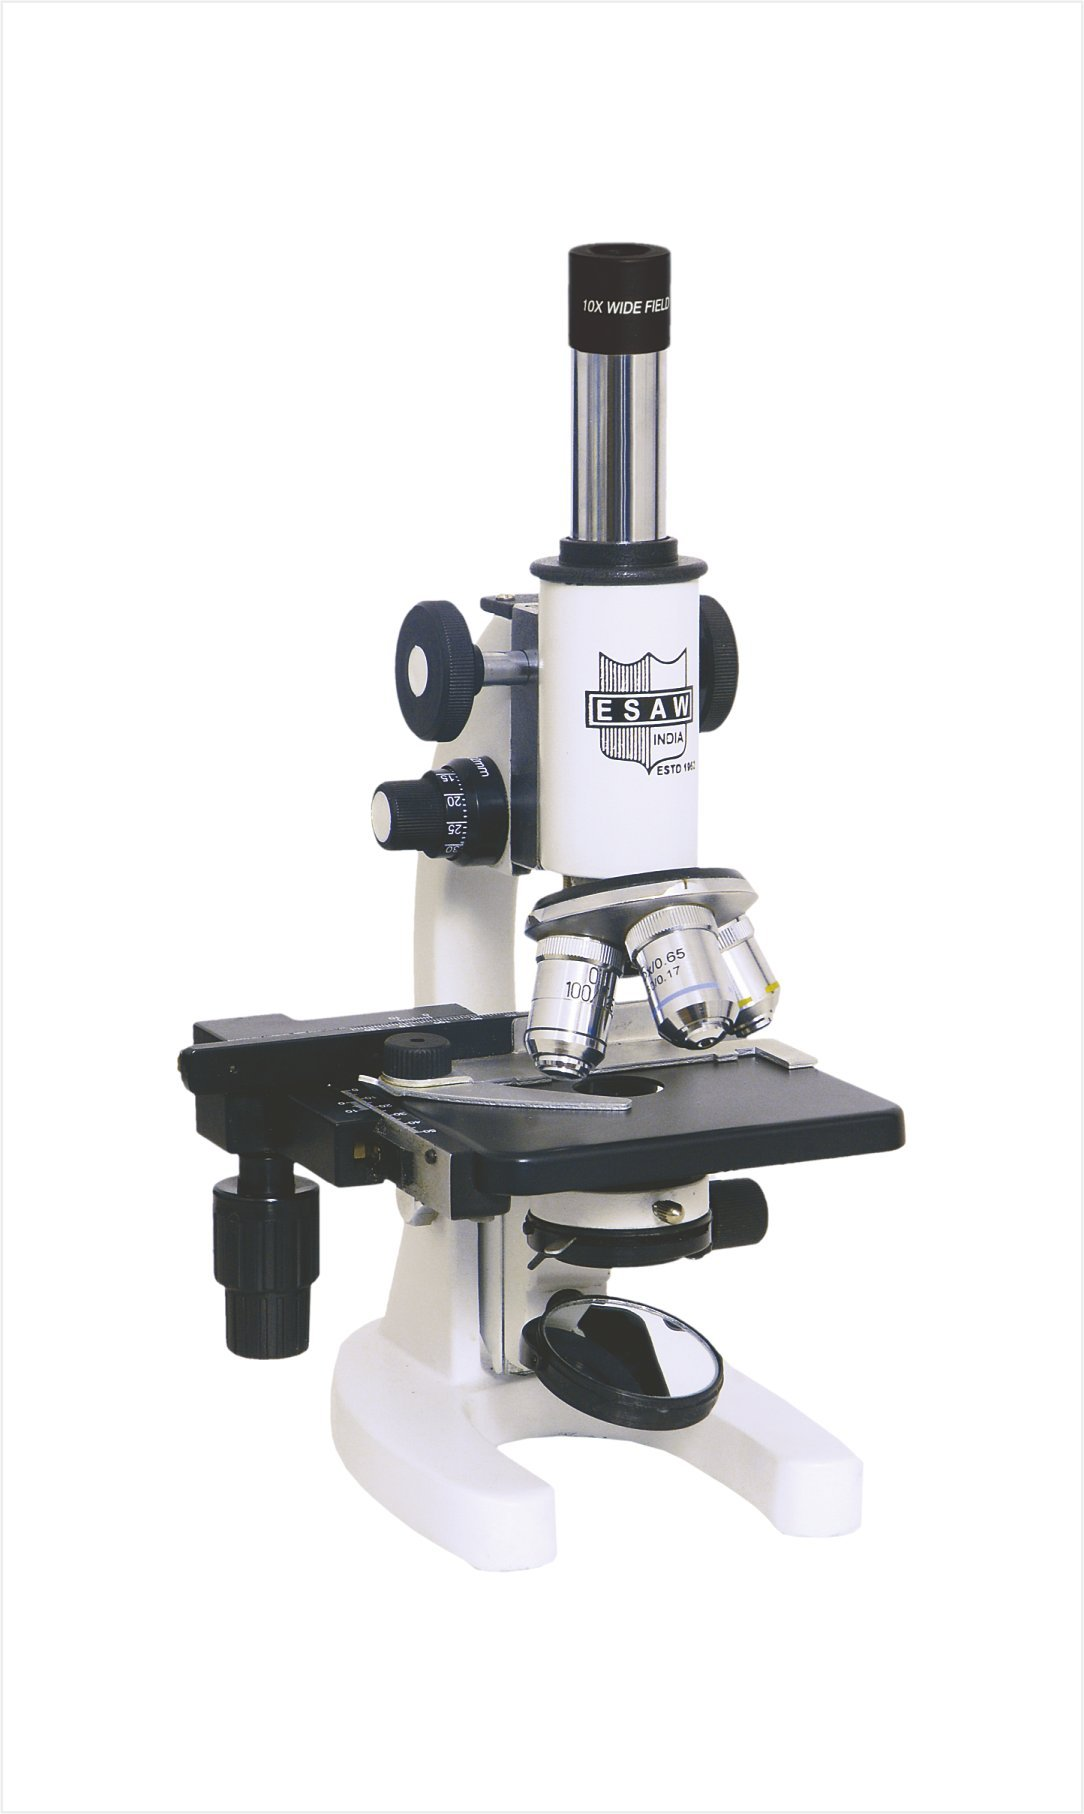 Very INDIA ESAW Semi-Plan Achro 100X Oil Immersion Objective